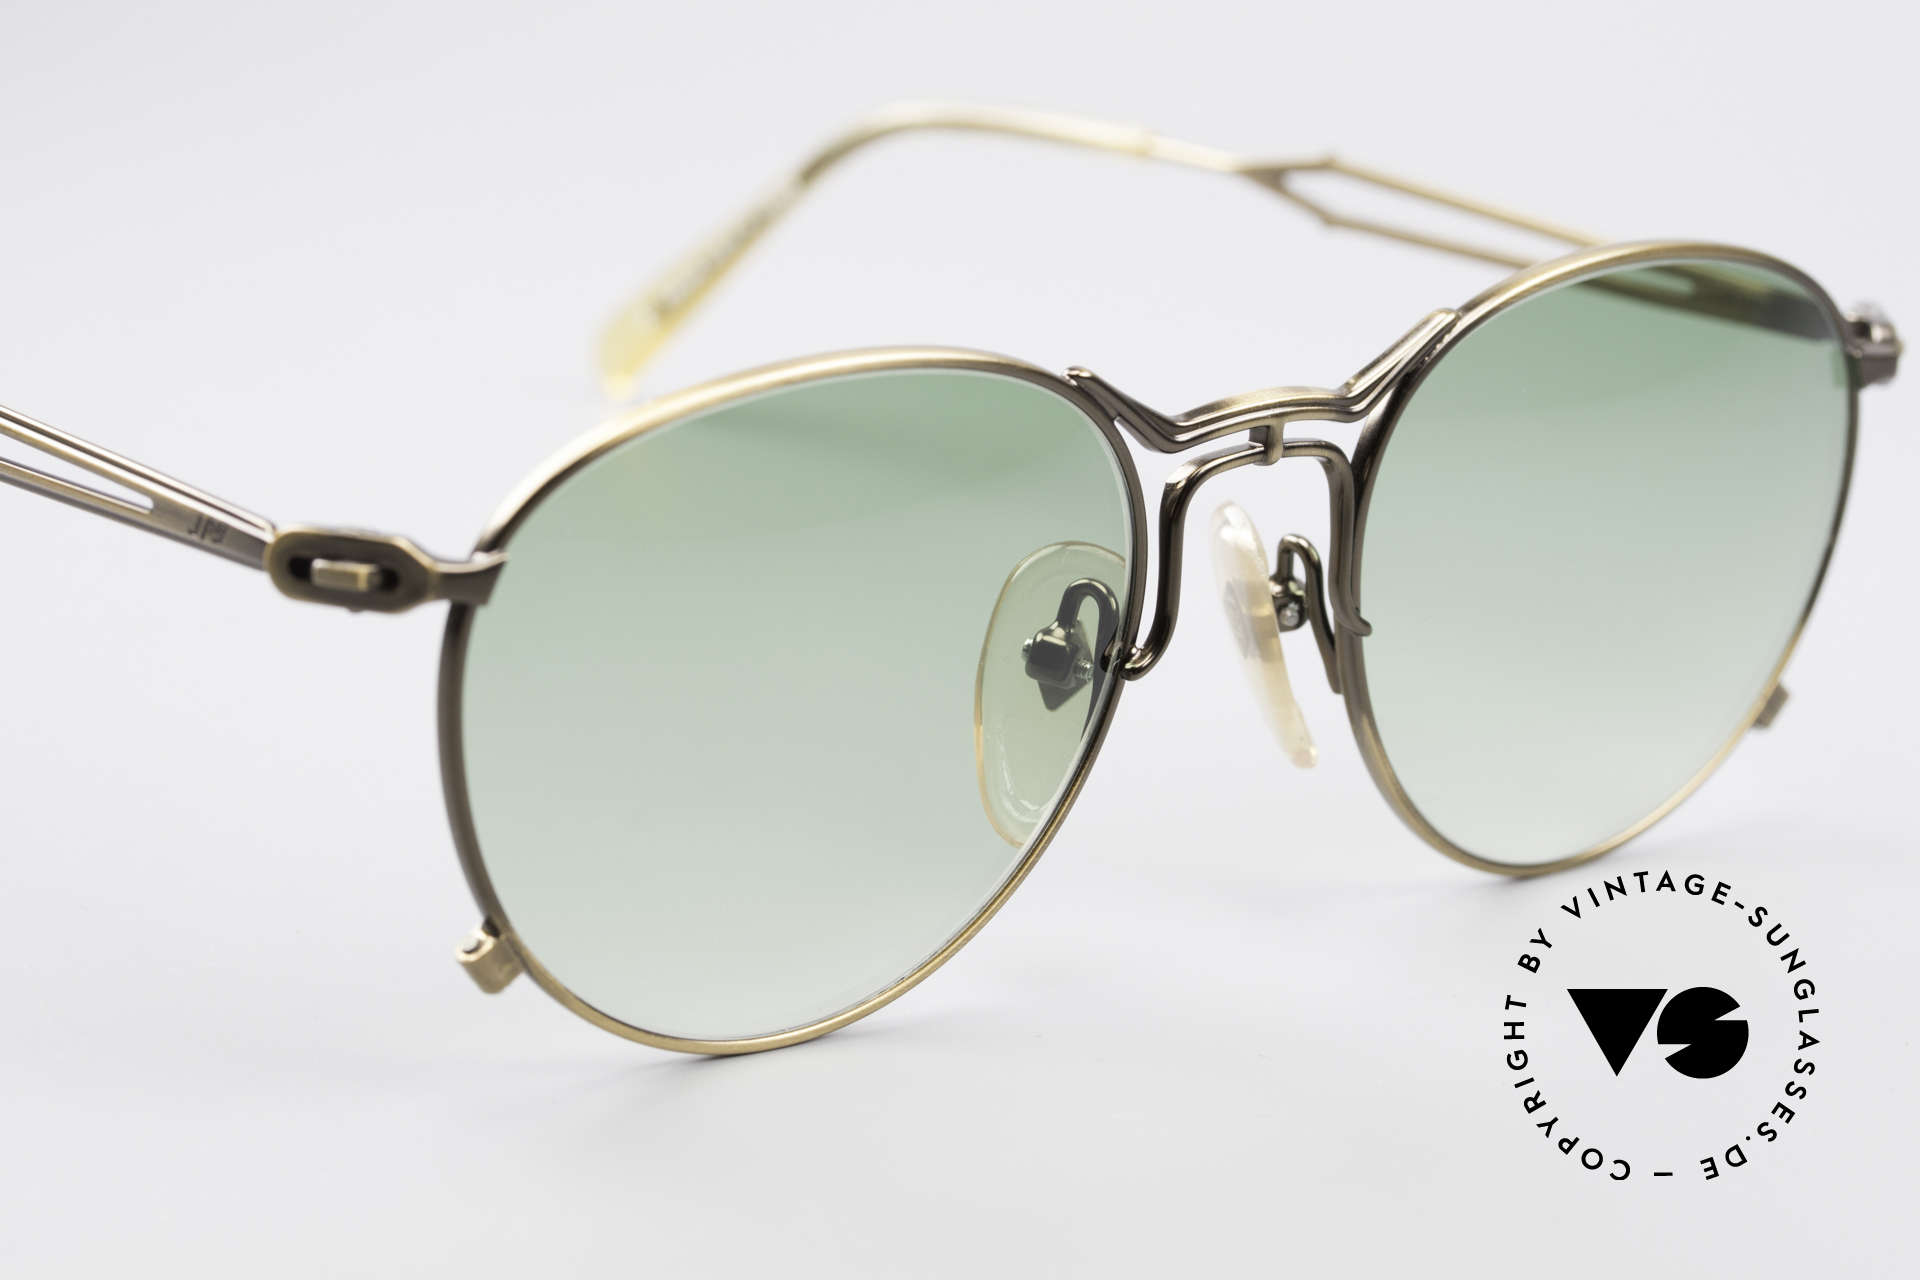 Jean Paul Gaultier 55-2177 True Vintage No Retro Frame, a real designer frame in top-notch quality from 1996, Made for Men and Women